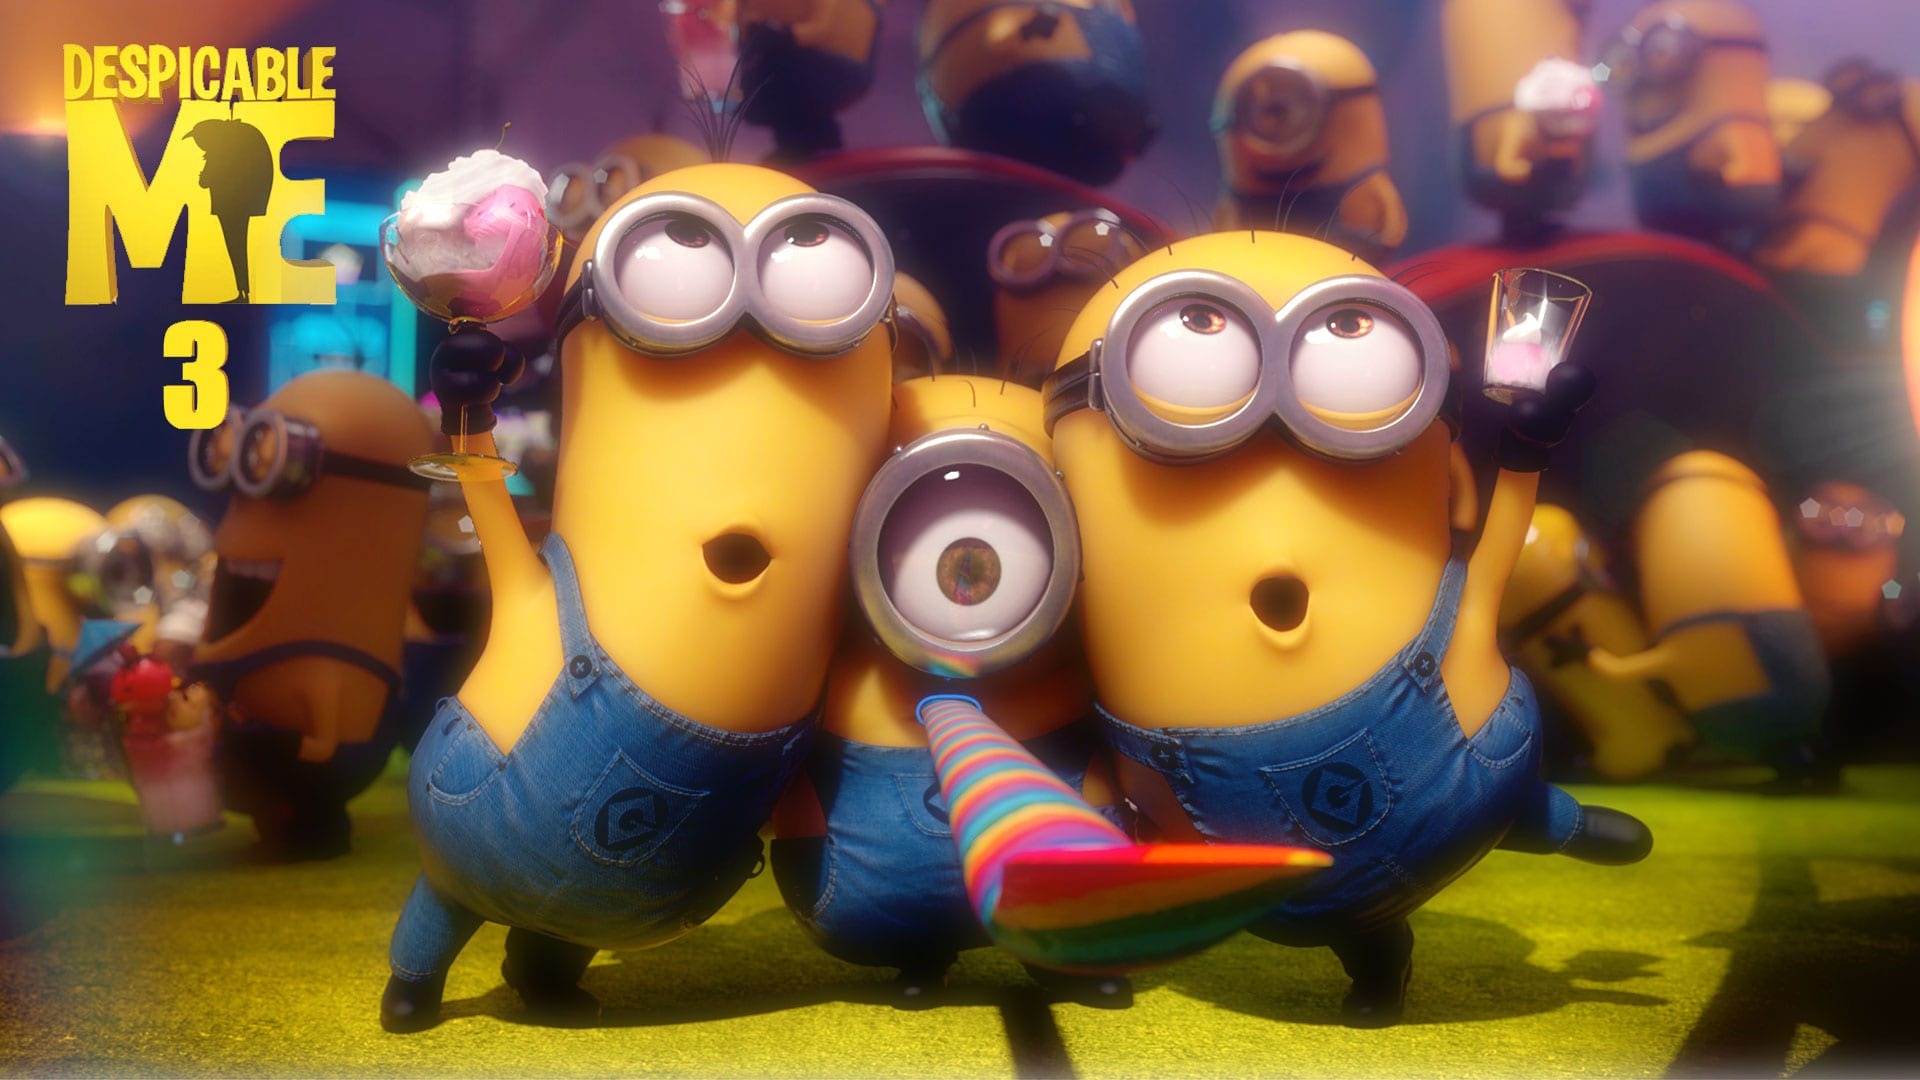 Despicable Me Wallpapers For Pc - Download Despicable Me 3 - HD Wallpaper